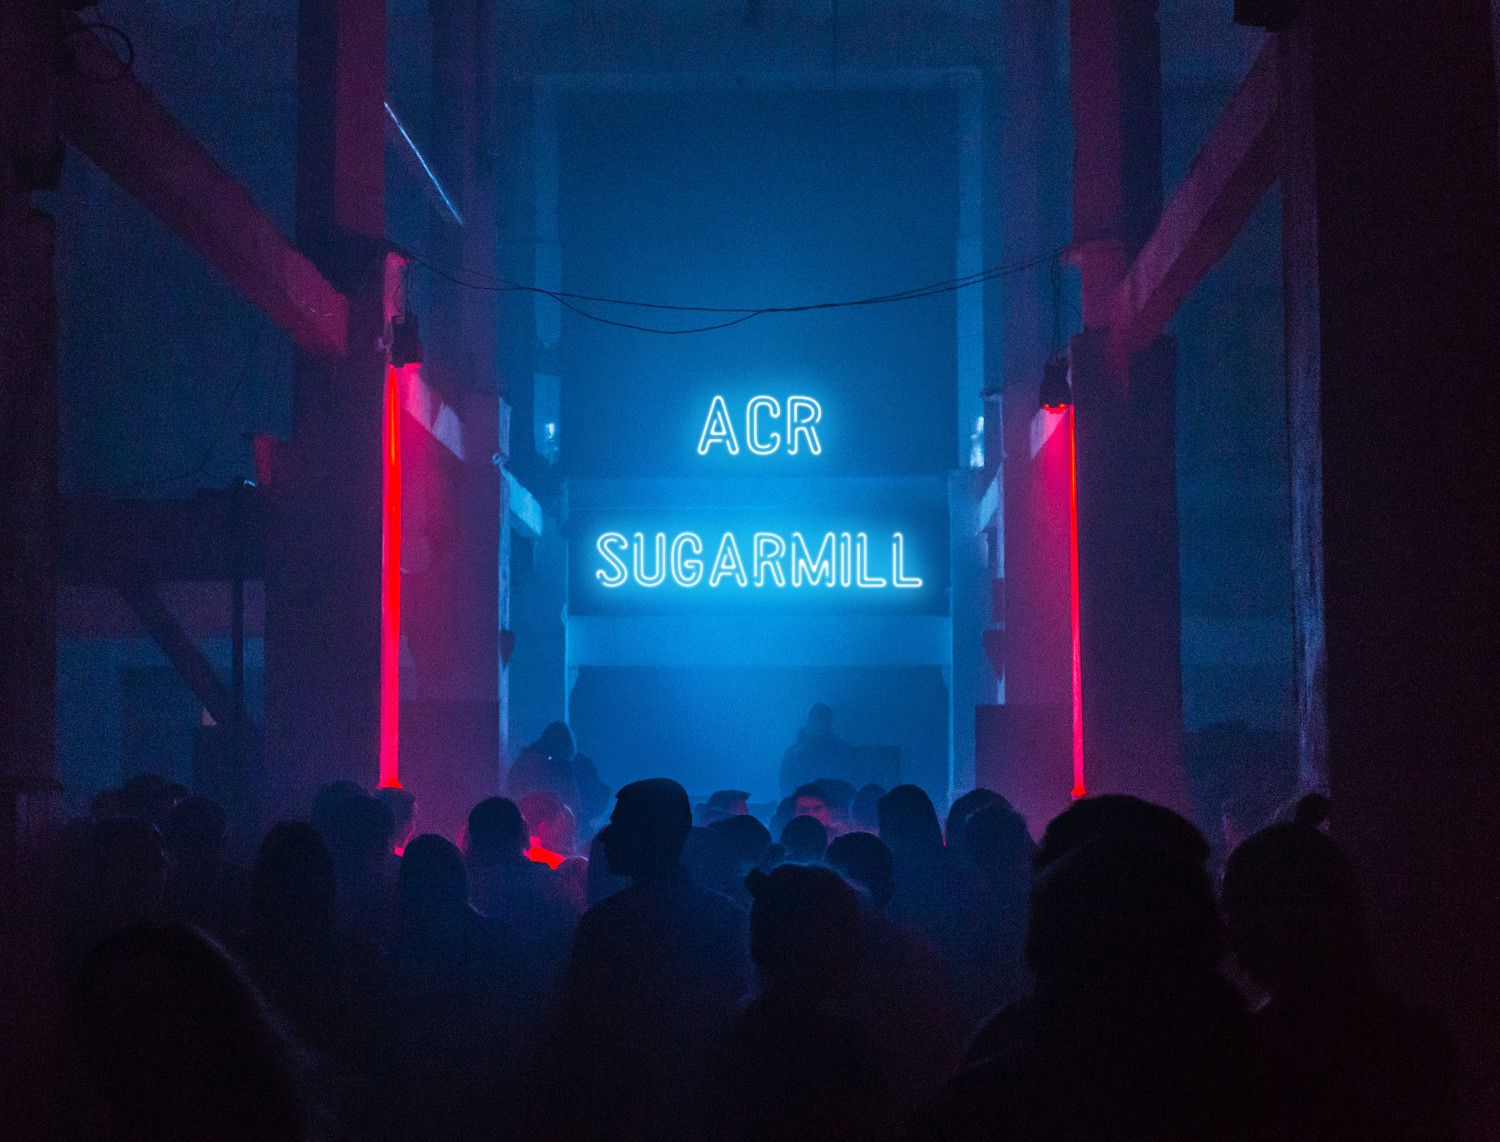 ACR Gigography - 15 November 2019, The Sugarmill, Stoke-on-Trent